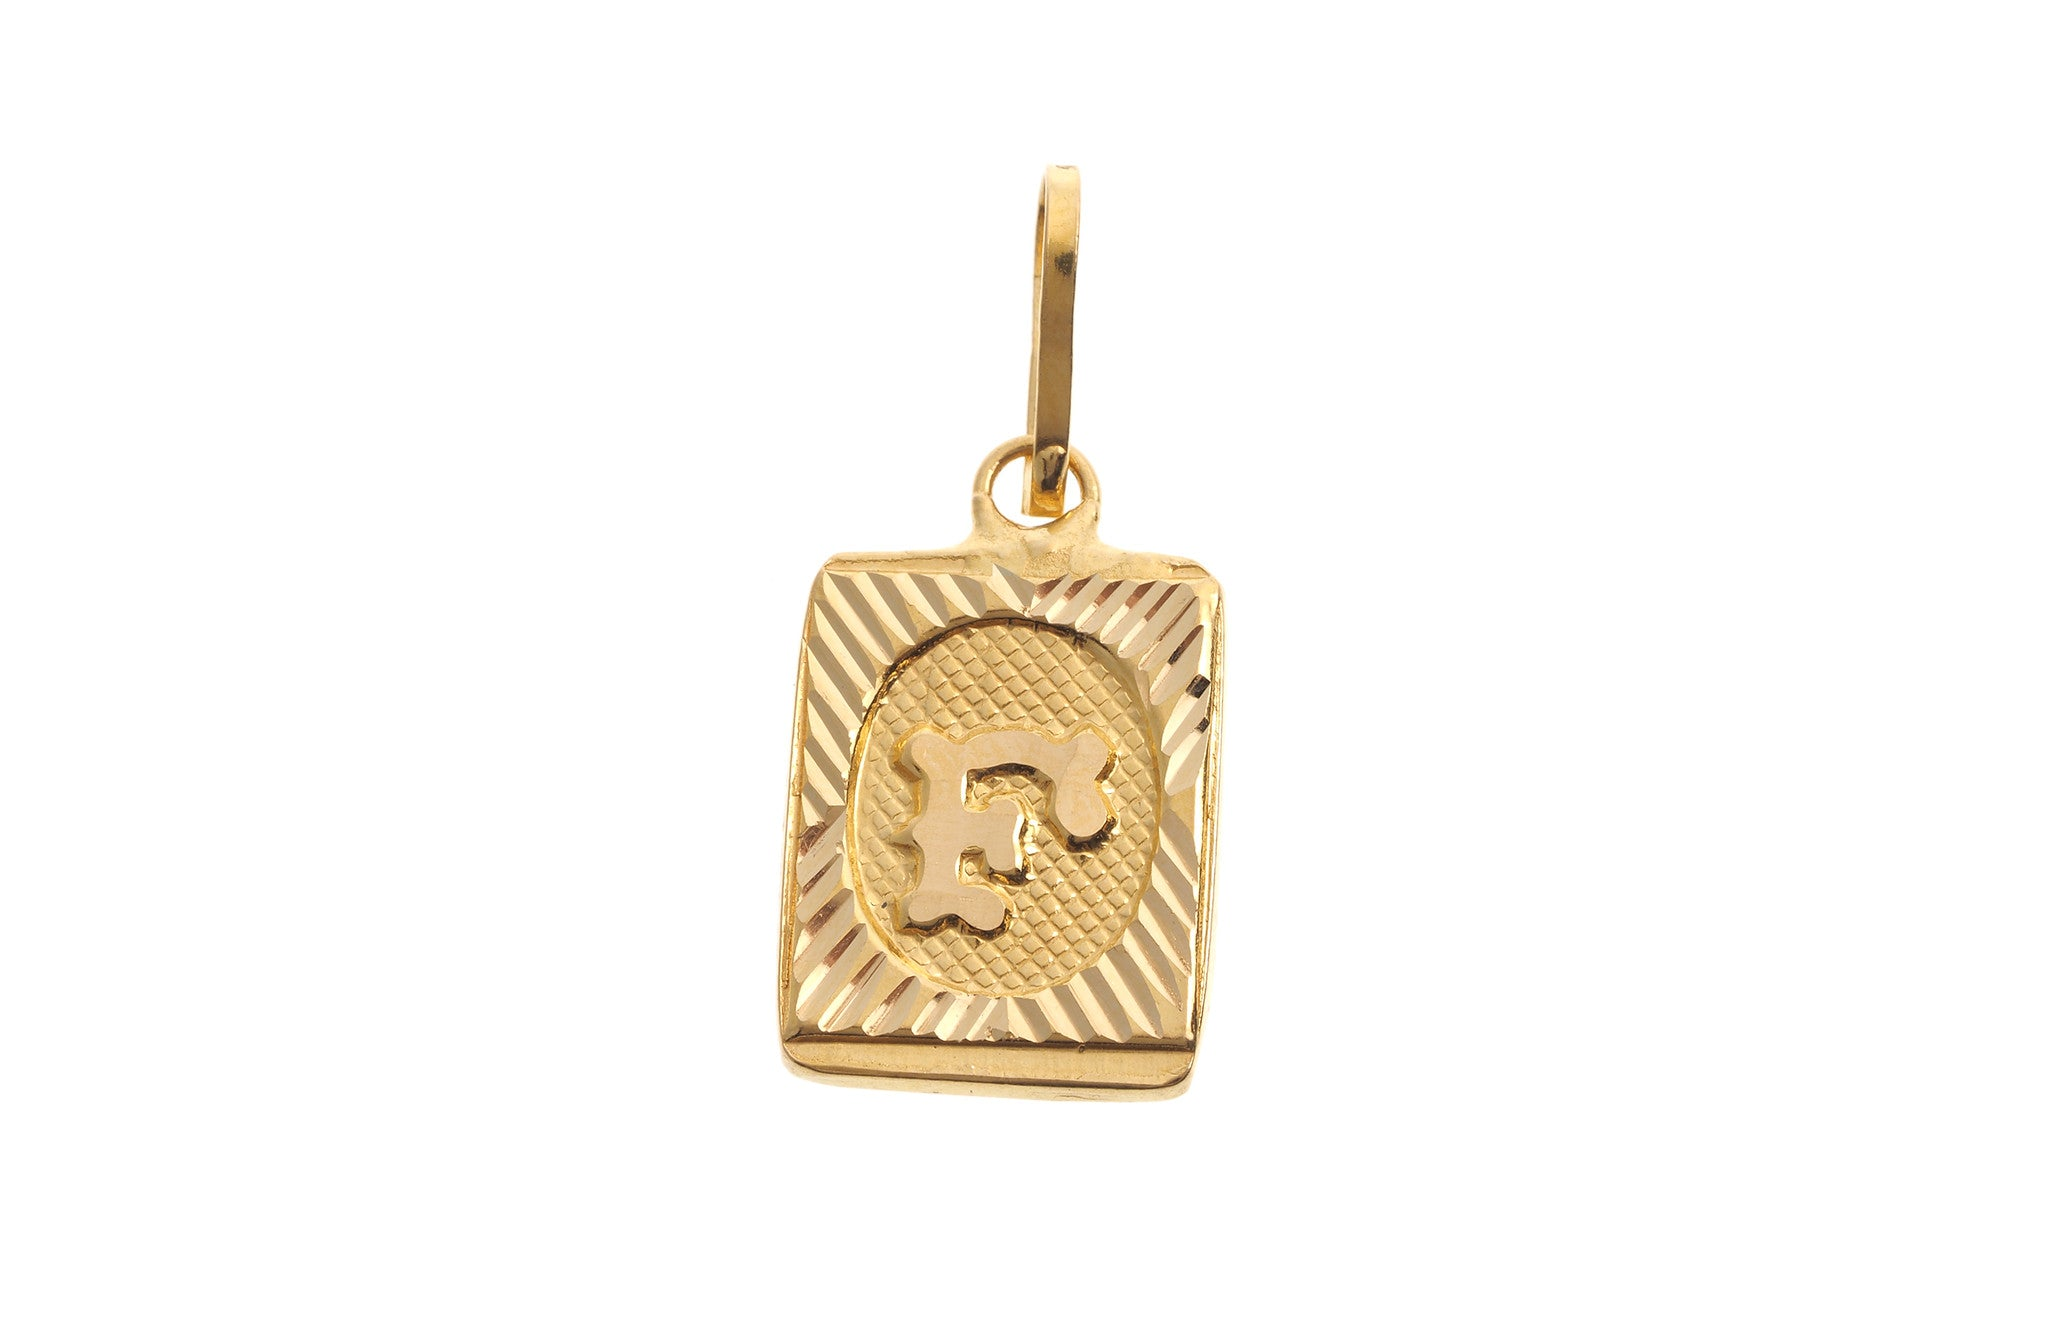 'F' Initial Pendant 22ct Yellow Gold (0.9g) P-5618